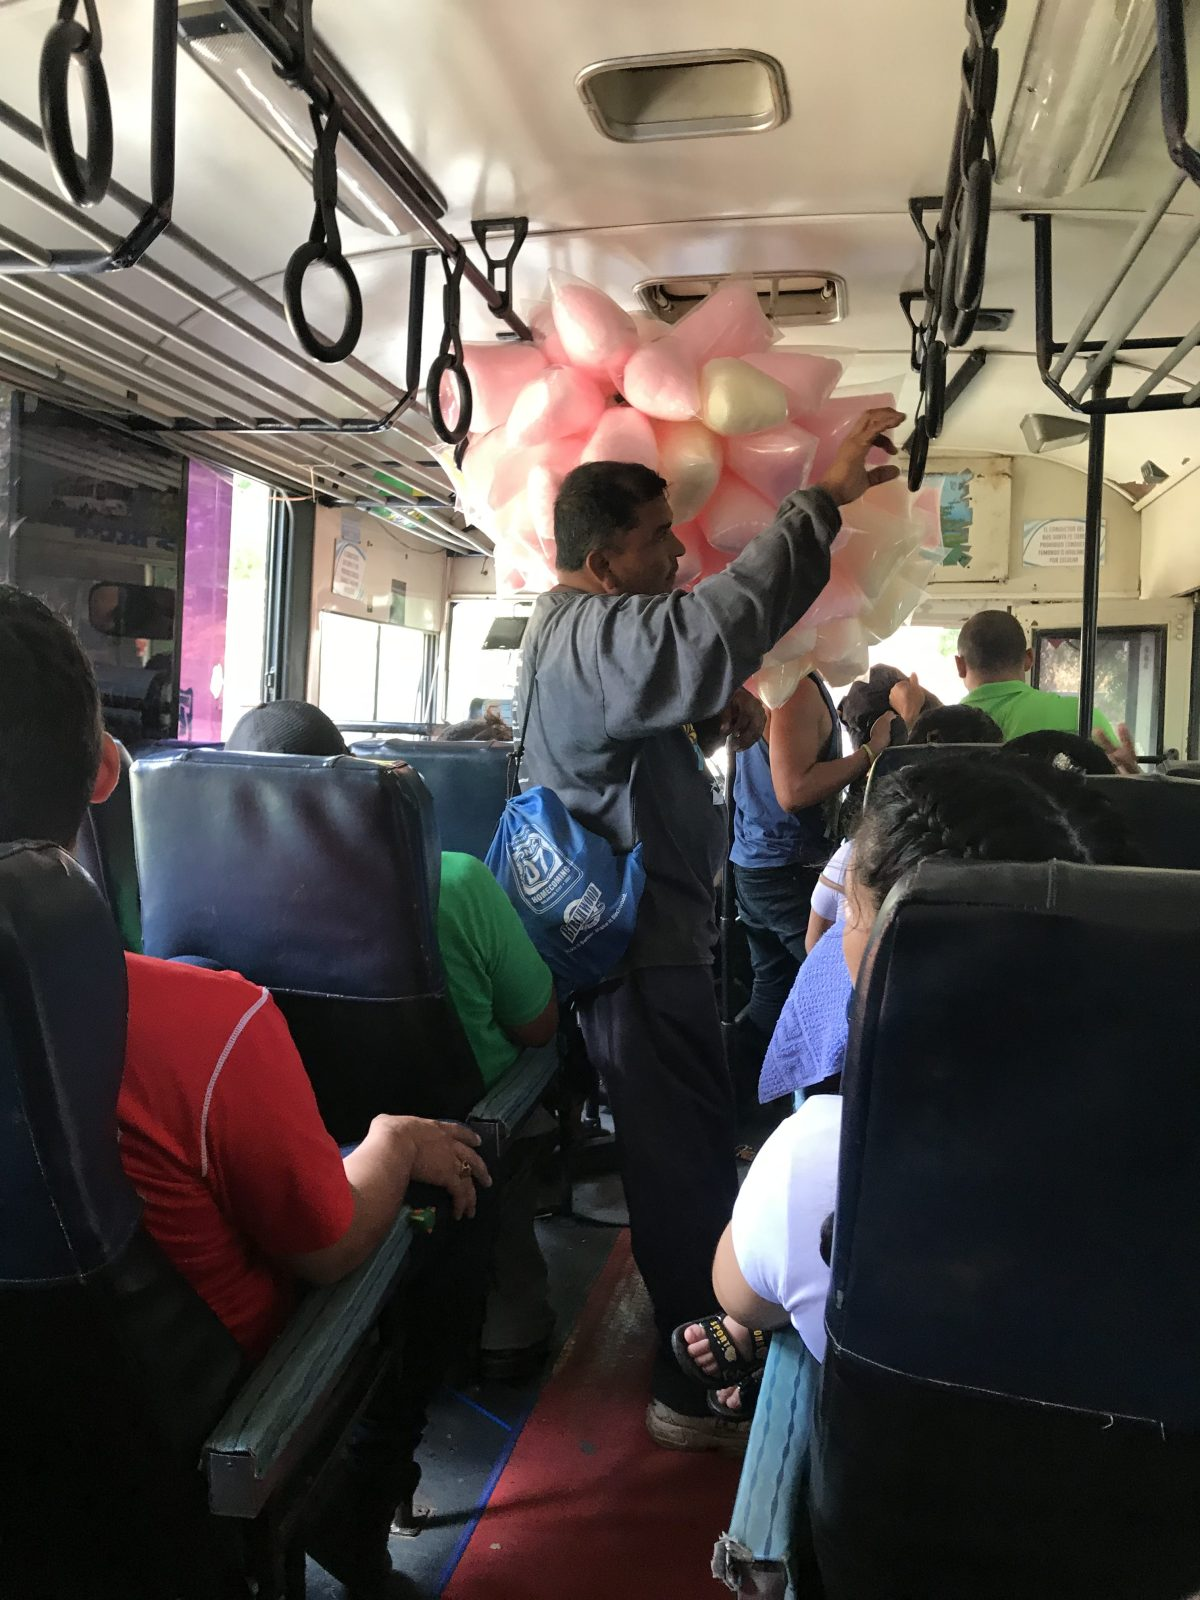 Cotton candy seller on the bus from San Jorge to Rivas